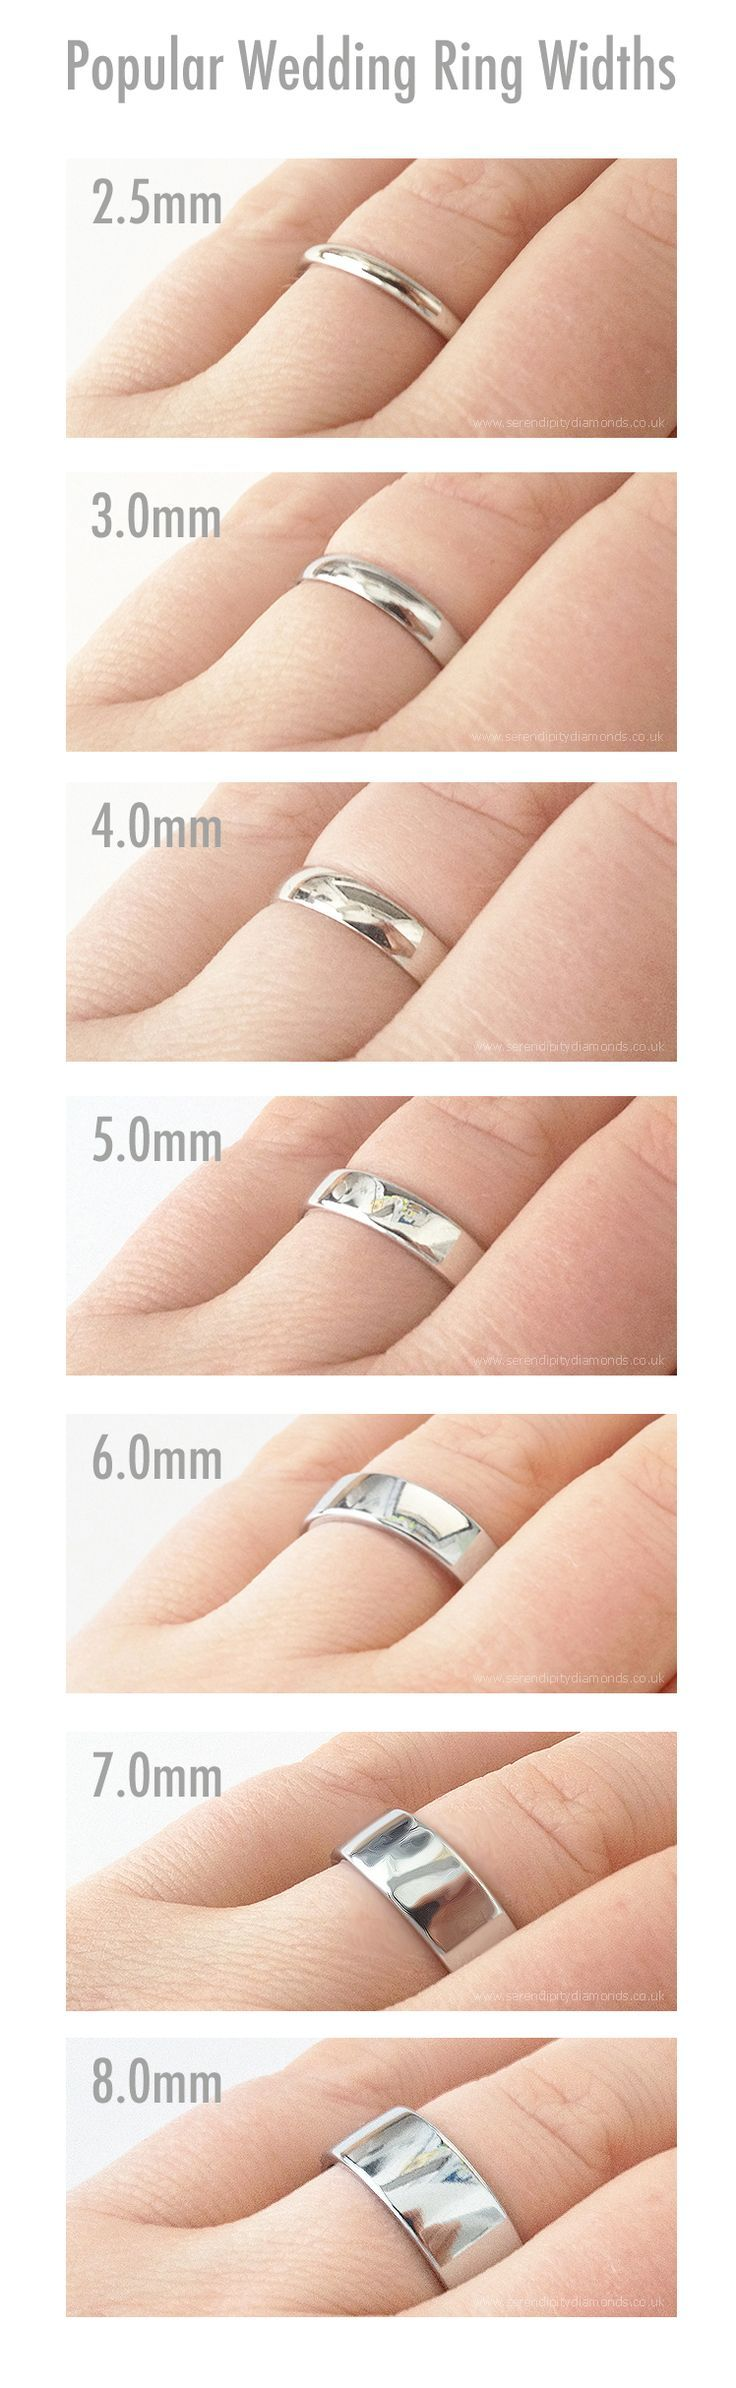 Popular widths of plain wedding rings. Showing 2.5mm to 8mm as popular choices for men's plain wedding rings. #wedding-pinned by wedding decorations specialists http://dazzlemeelegant.com